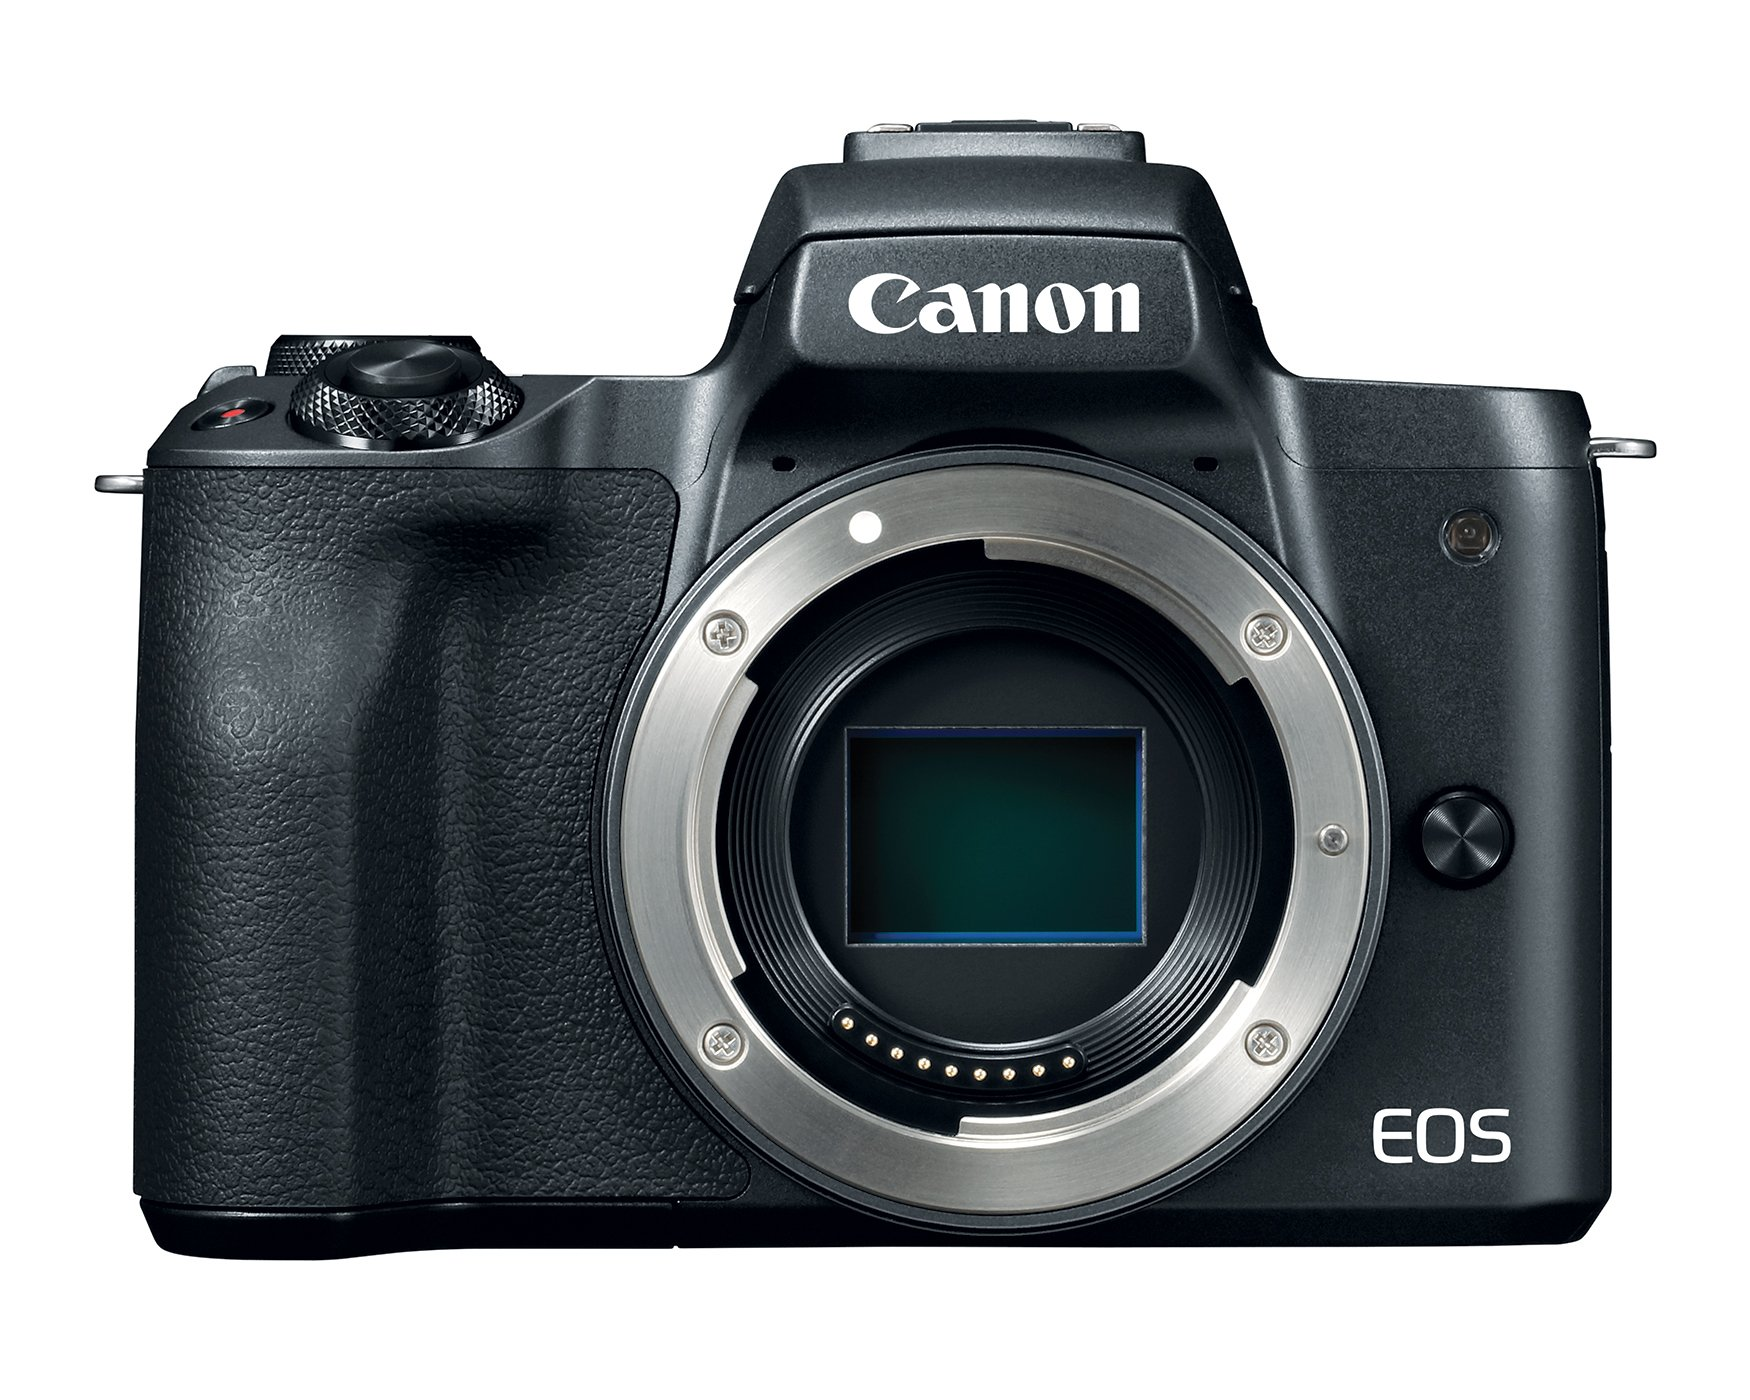 Canon EOS M50 Mirrorless Digital Vlogging Camera with EF-M15-45mm Lens and EF-M 55-200mm Lenses with 4K Video and Touch LCD Screen, Black - 81HywbzL4ZL - Canon EOS M50 Mirrorless Digital Vlogging Camera with EF-M15-45mm Lens and EF-M 55-200mm Lenses with 4K Video and Touch LCD Screen, Black